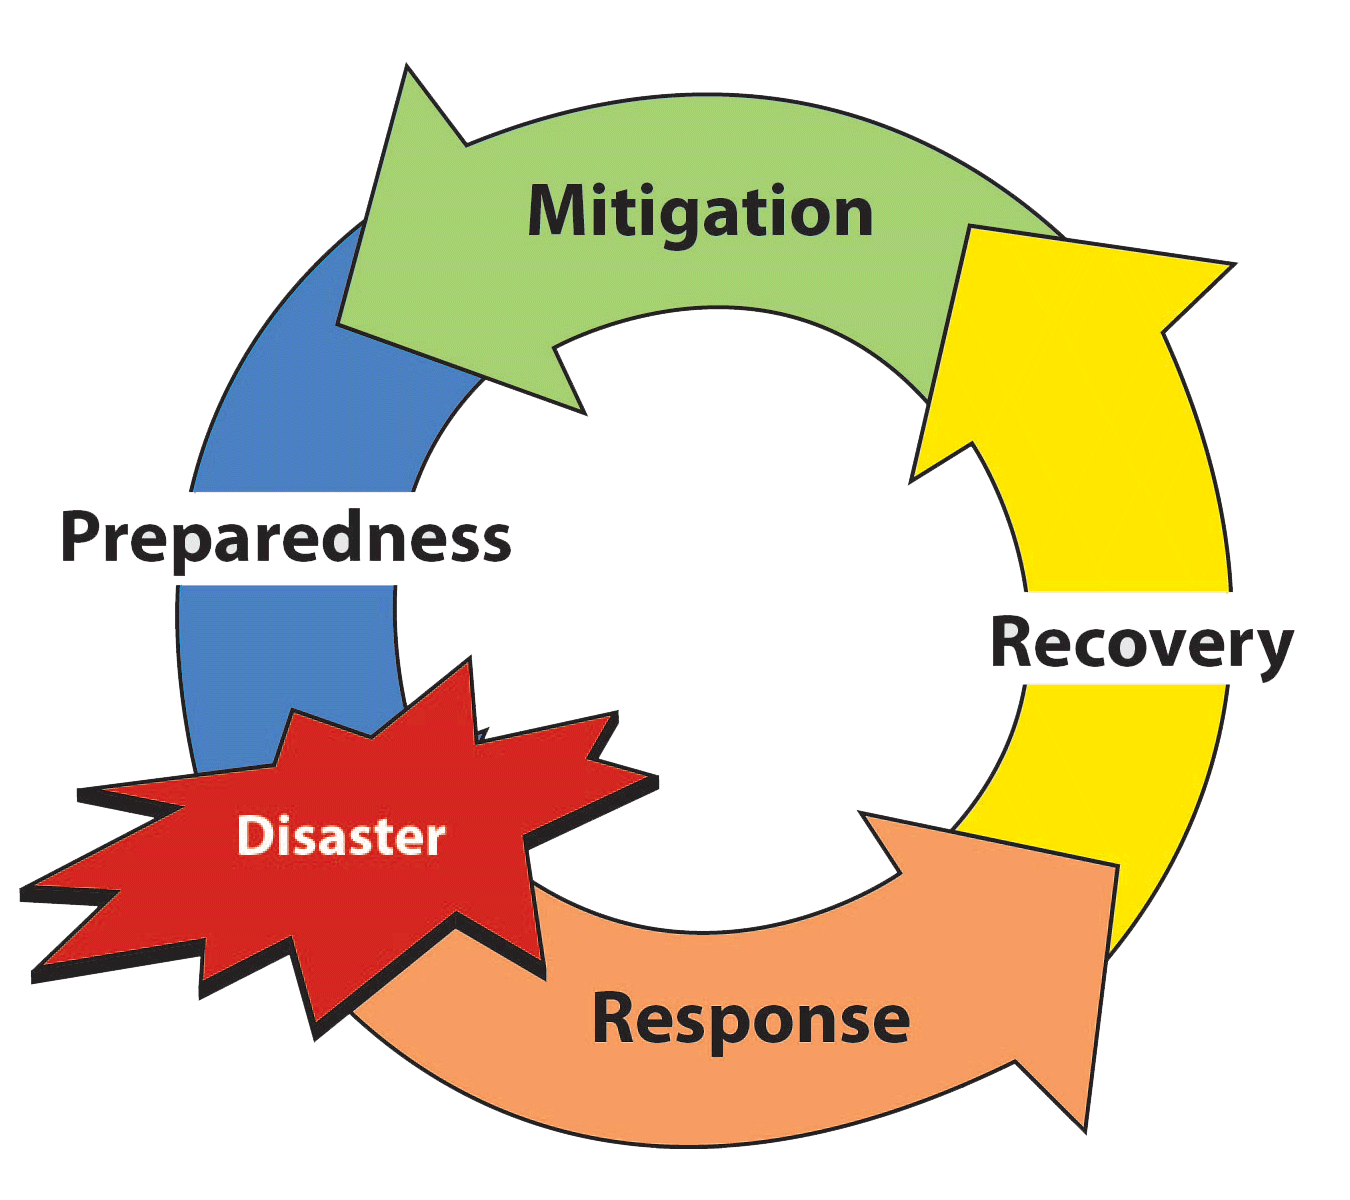 ics planning cycle diagram car sound system online training epas all hazards boot camp